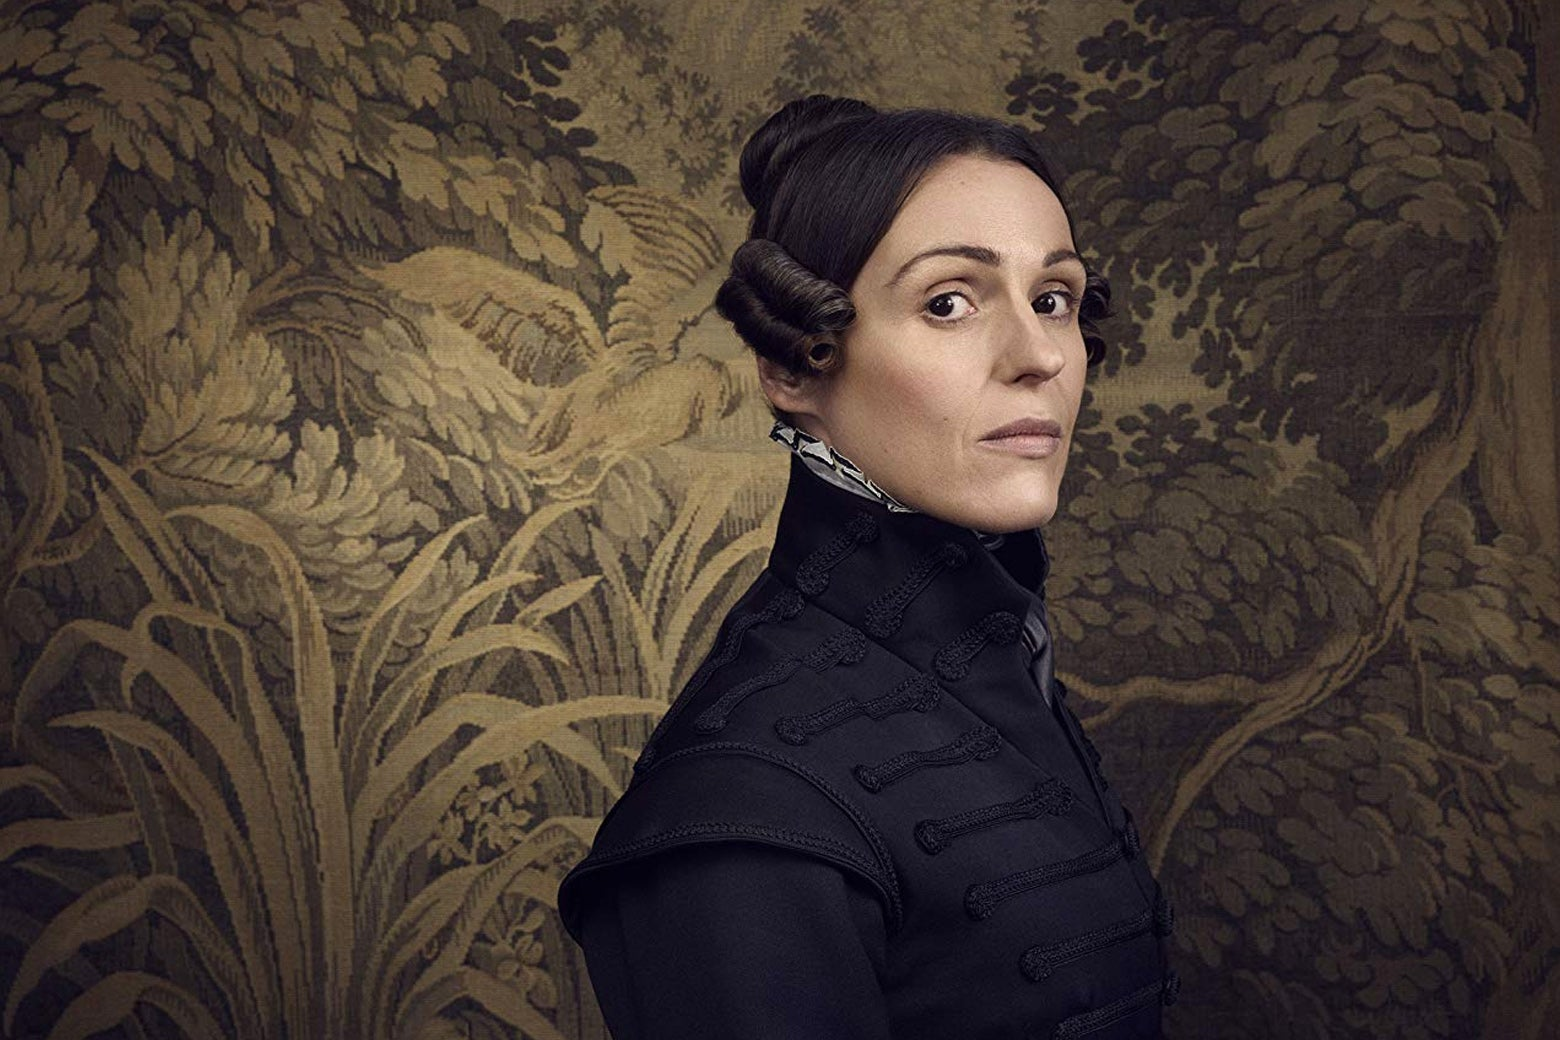 Suranne Jones in a dark suit in Gentleman Jack.